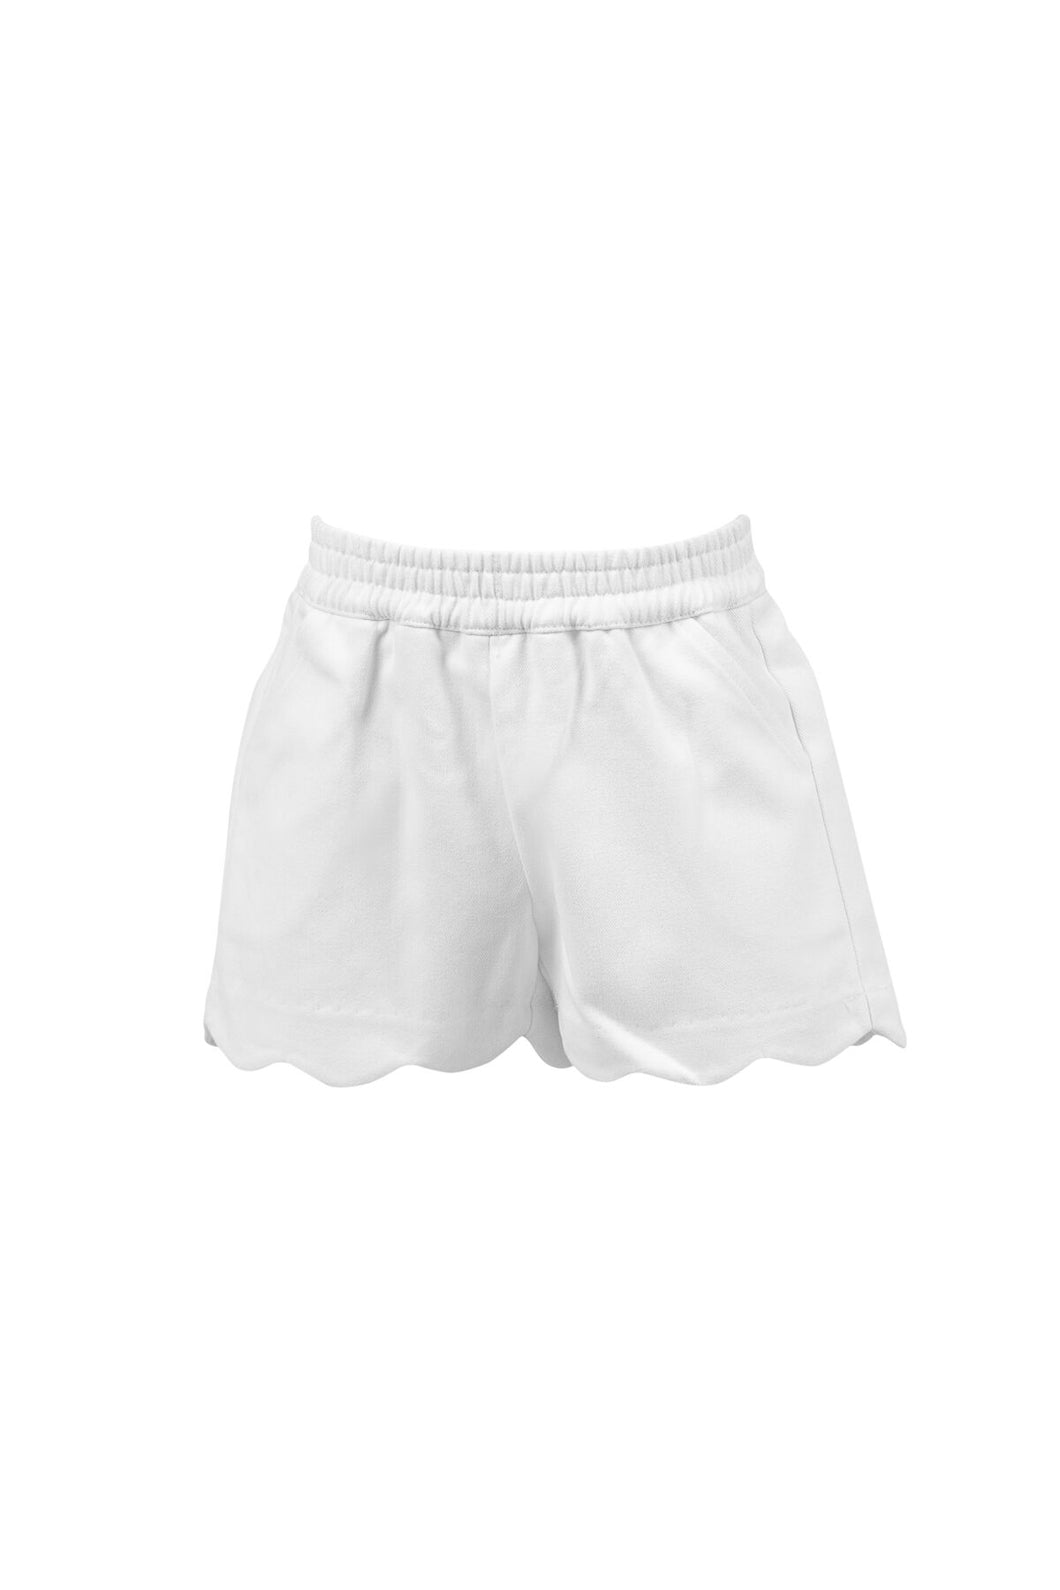 Susie Shorts - White